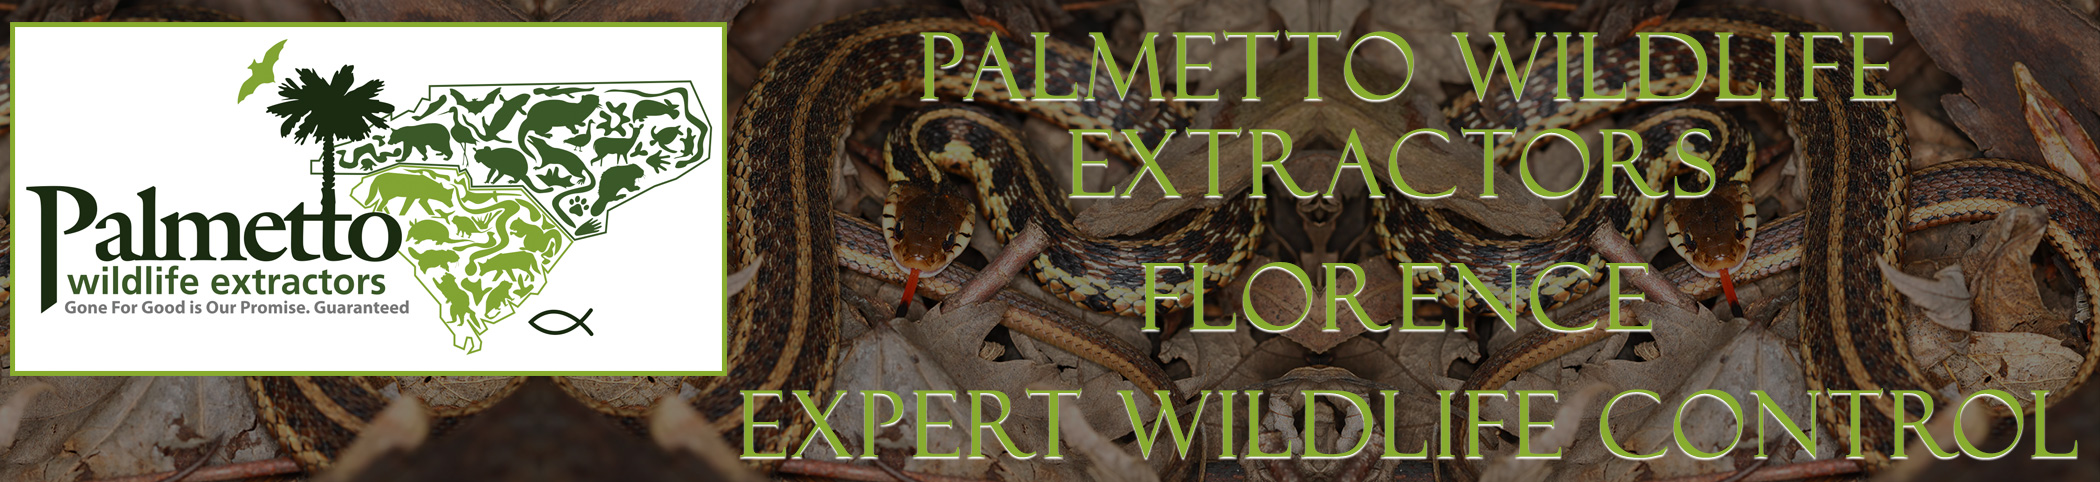 Palmetto Wildlife Extractors Florence south carolina header image